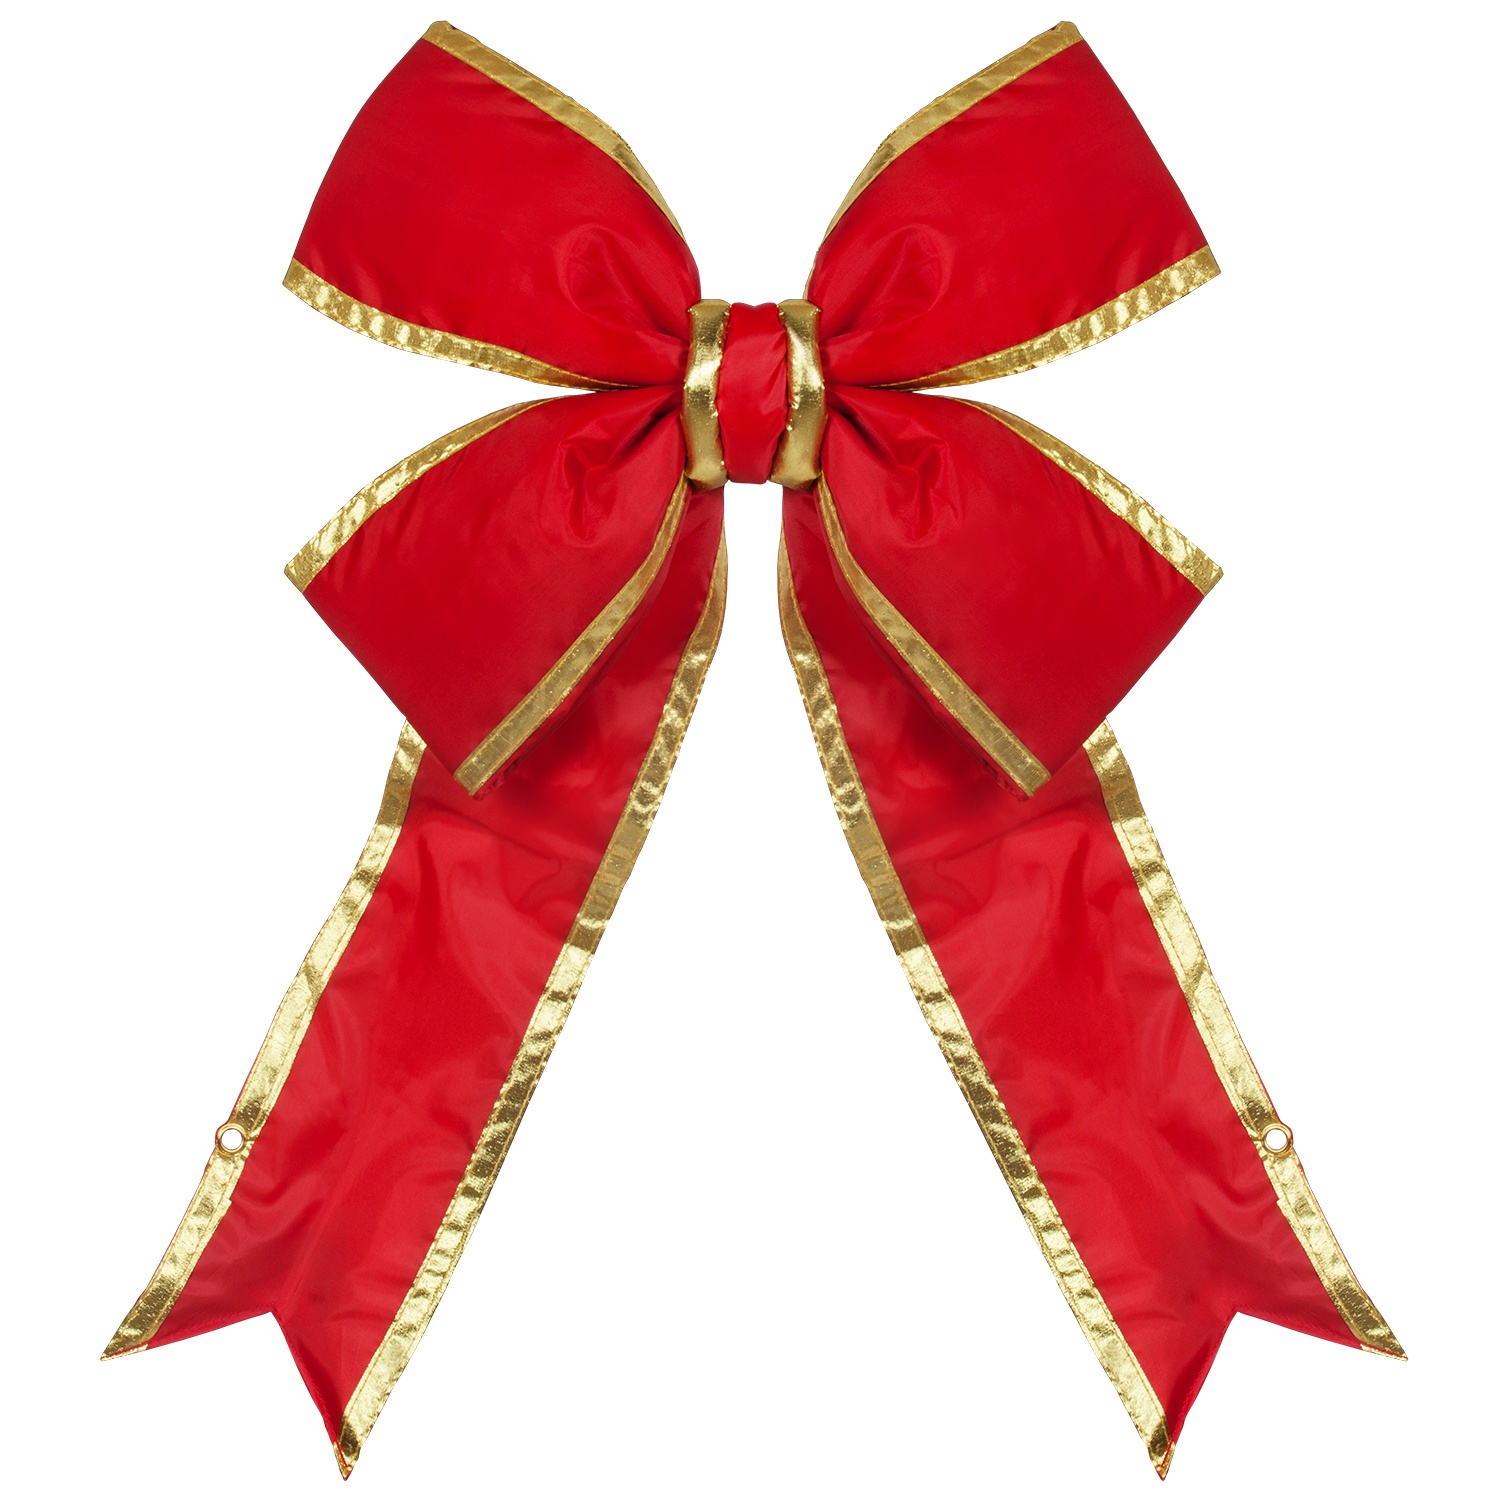 Nylon Red with Gold Trim Bow